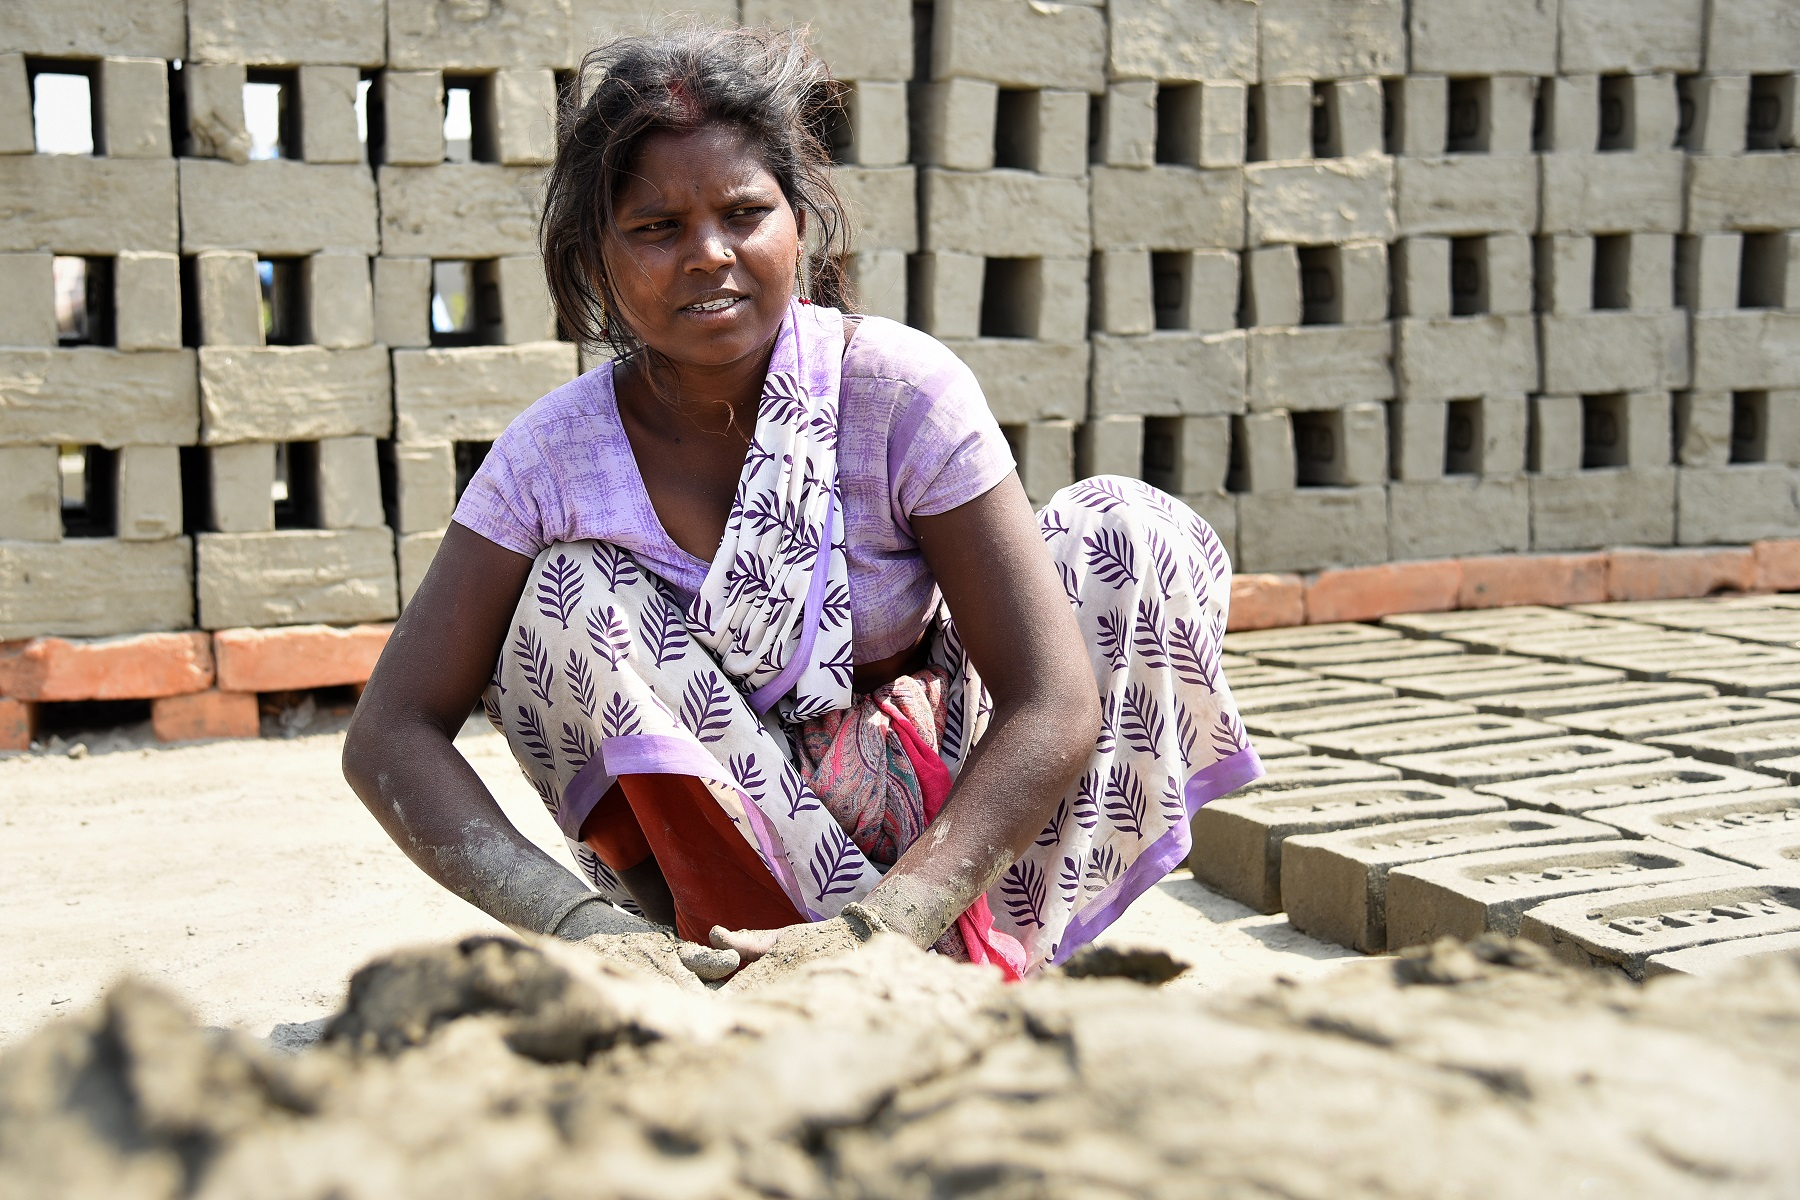 An adolescent Indian girl at a brick kiln